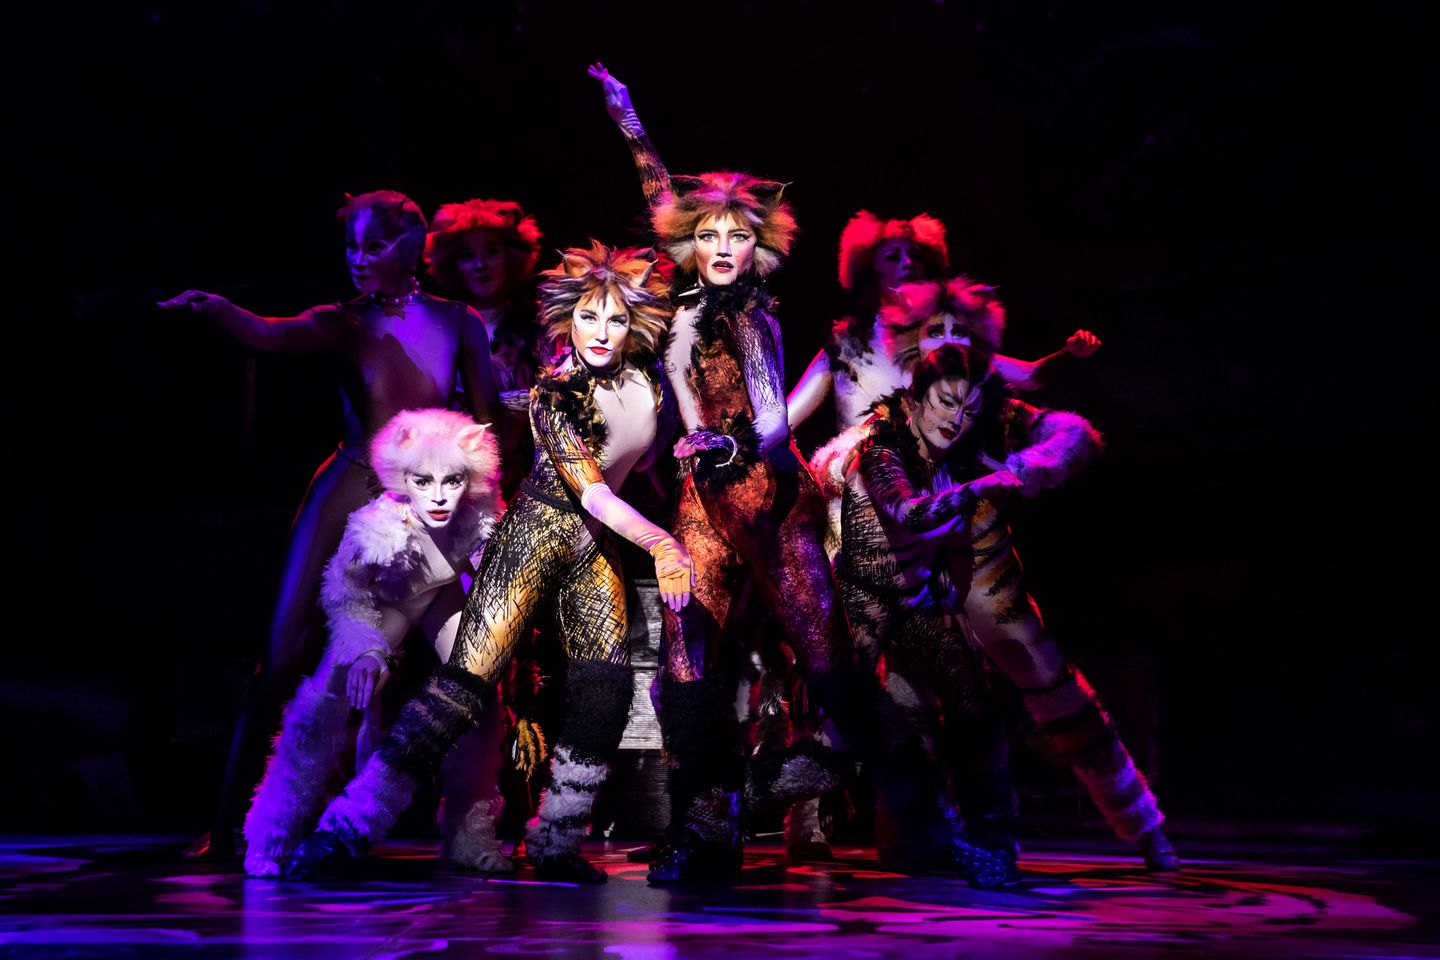 Choreographer Imagined Cats Then He Reimagined It The